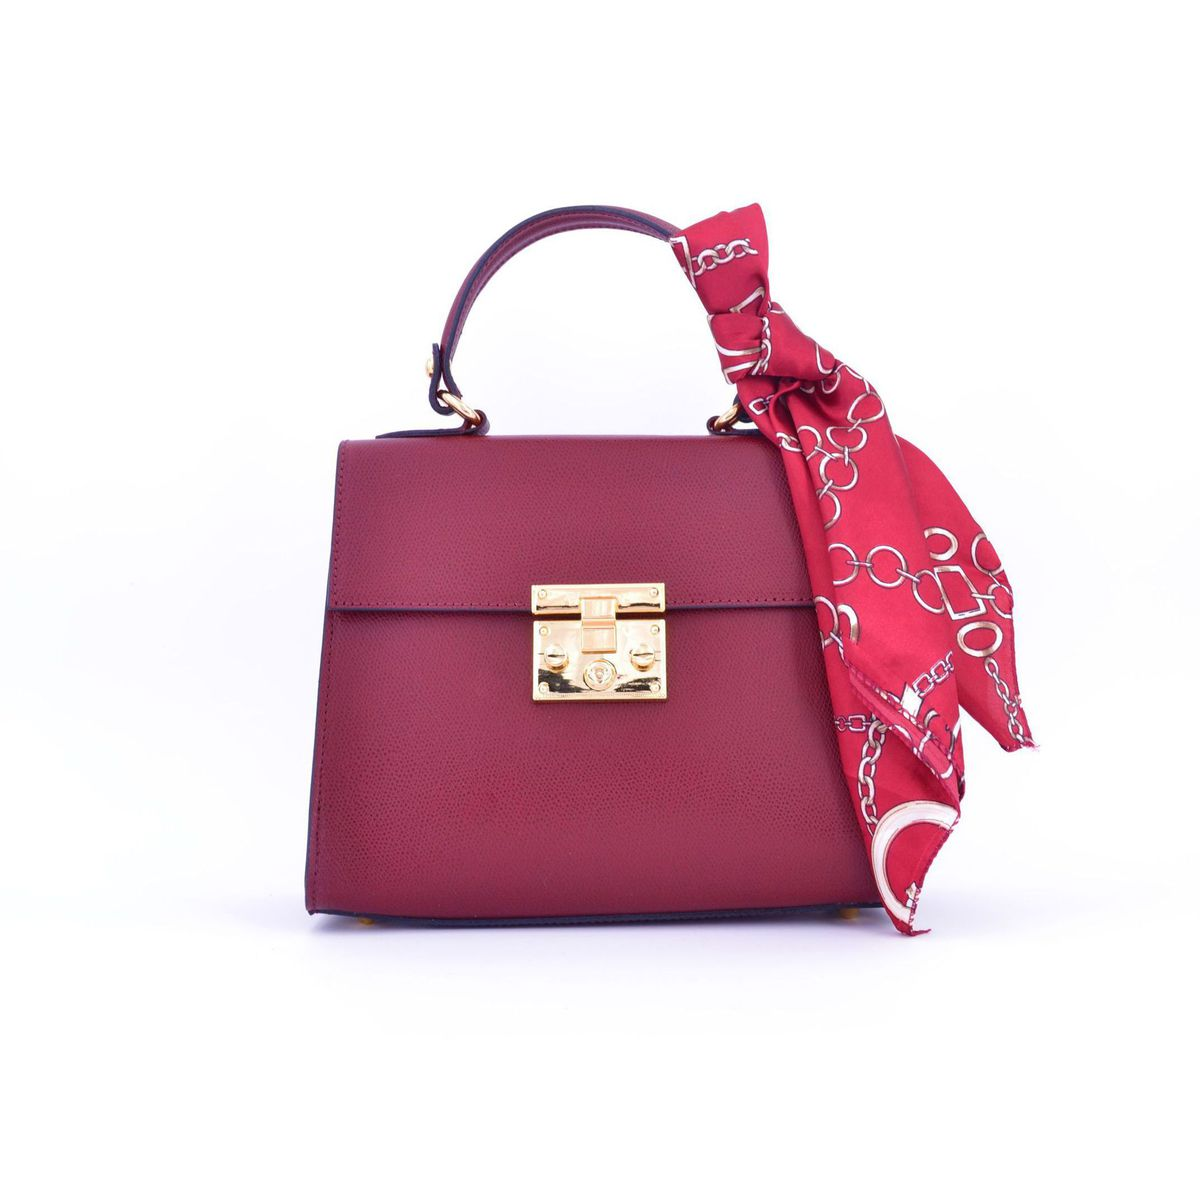 BORDEAUX TRAP BAG WITH FOULARD Bordeaux BRASS Workshop